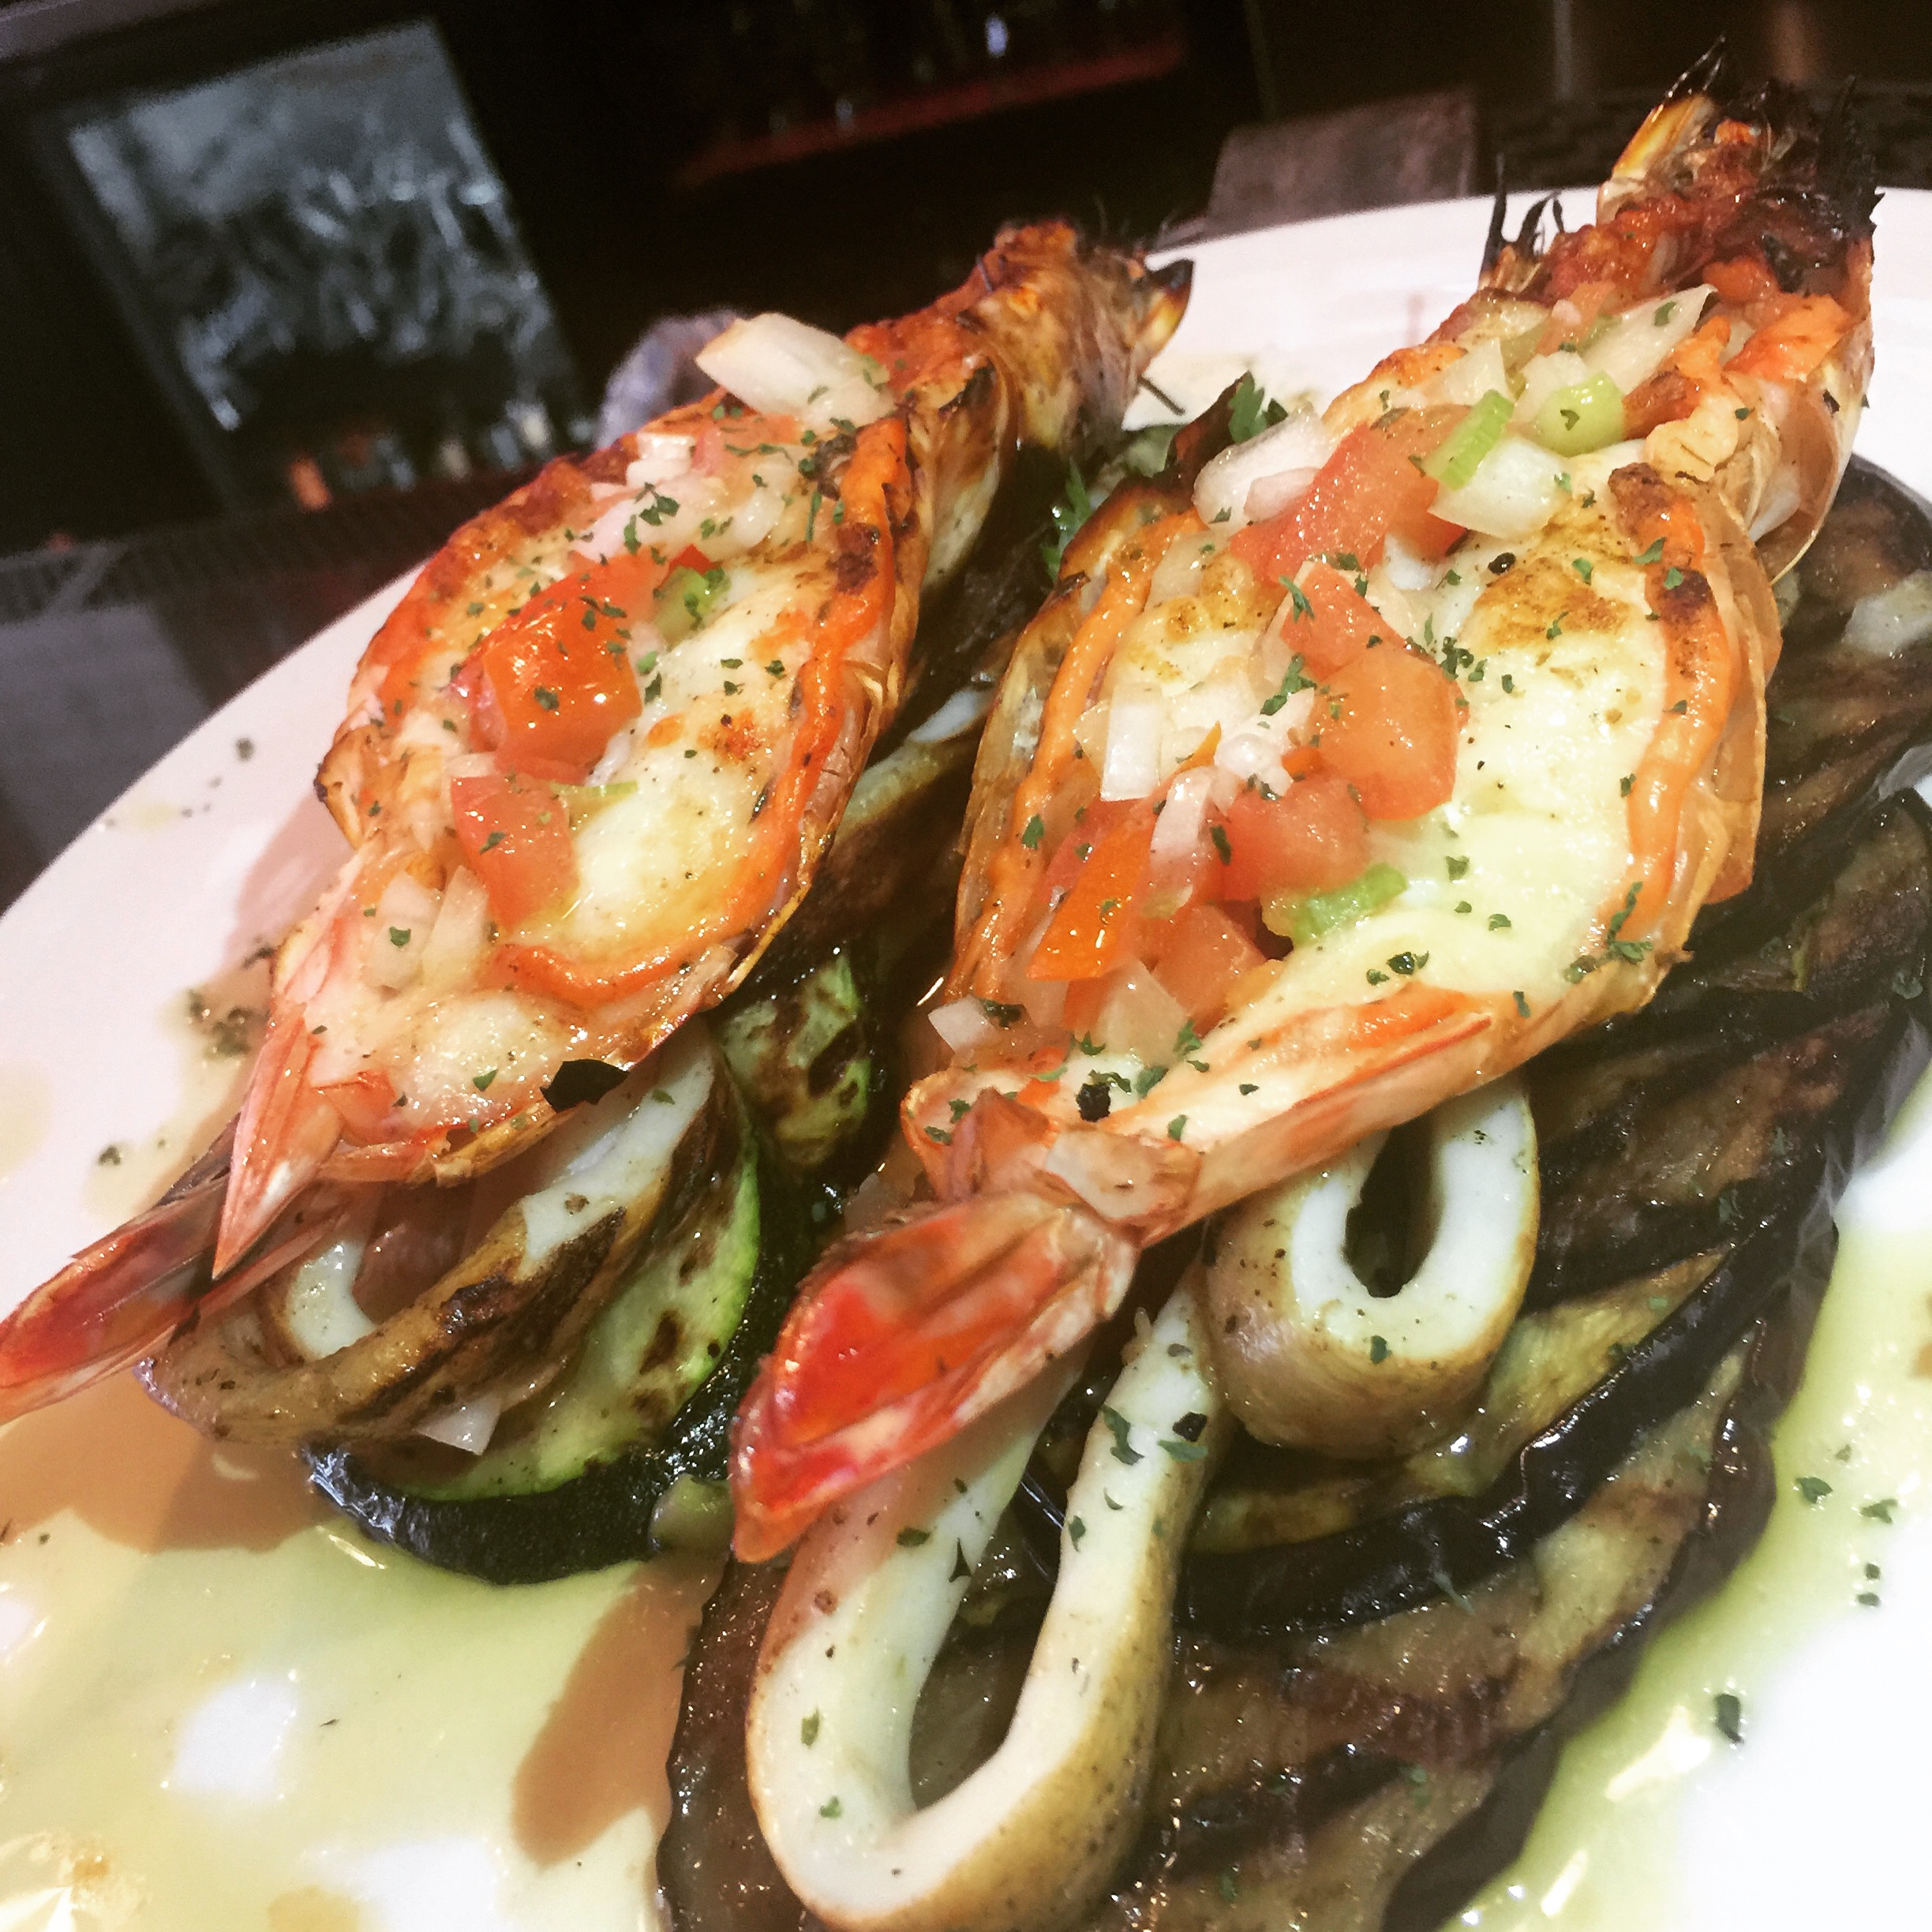 Grilled shrimp and calamari with grilled zucchini and eggplant